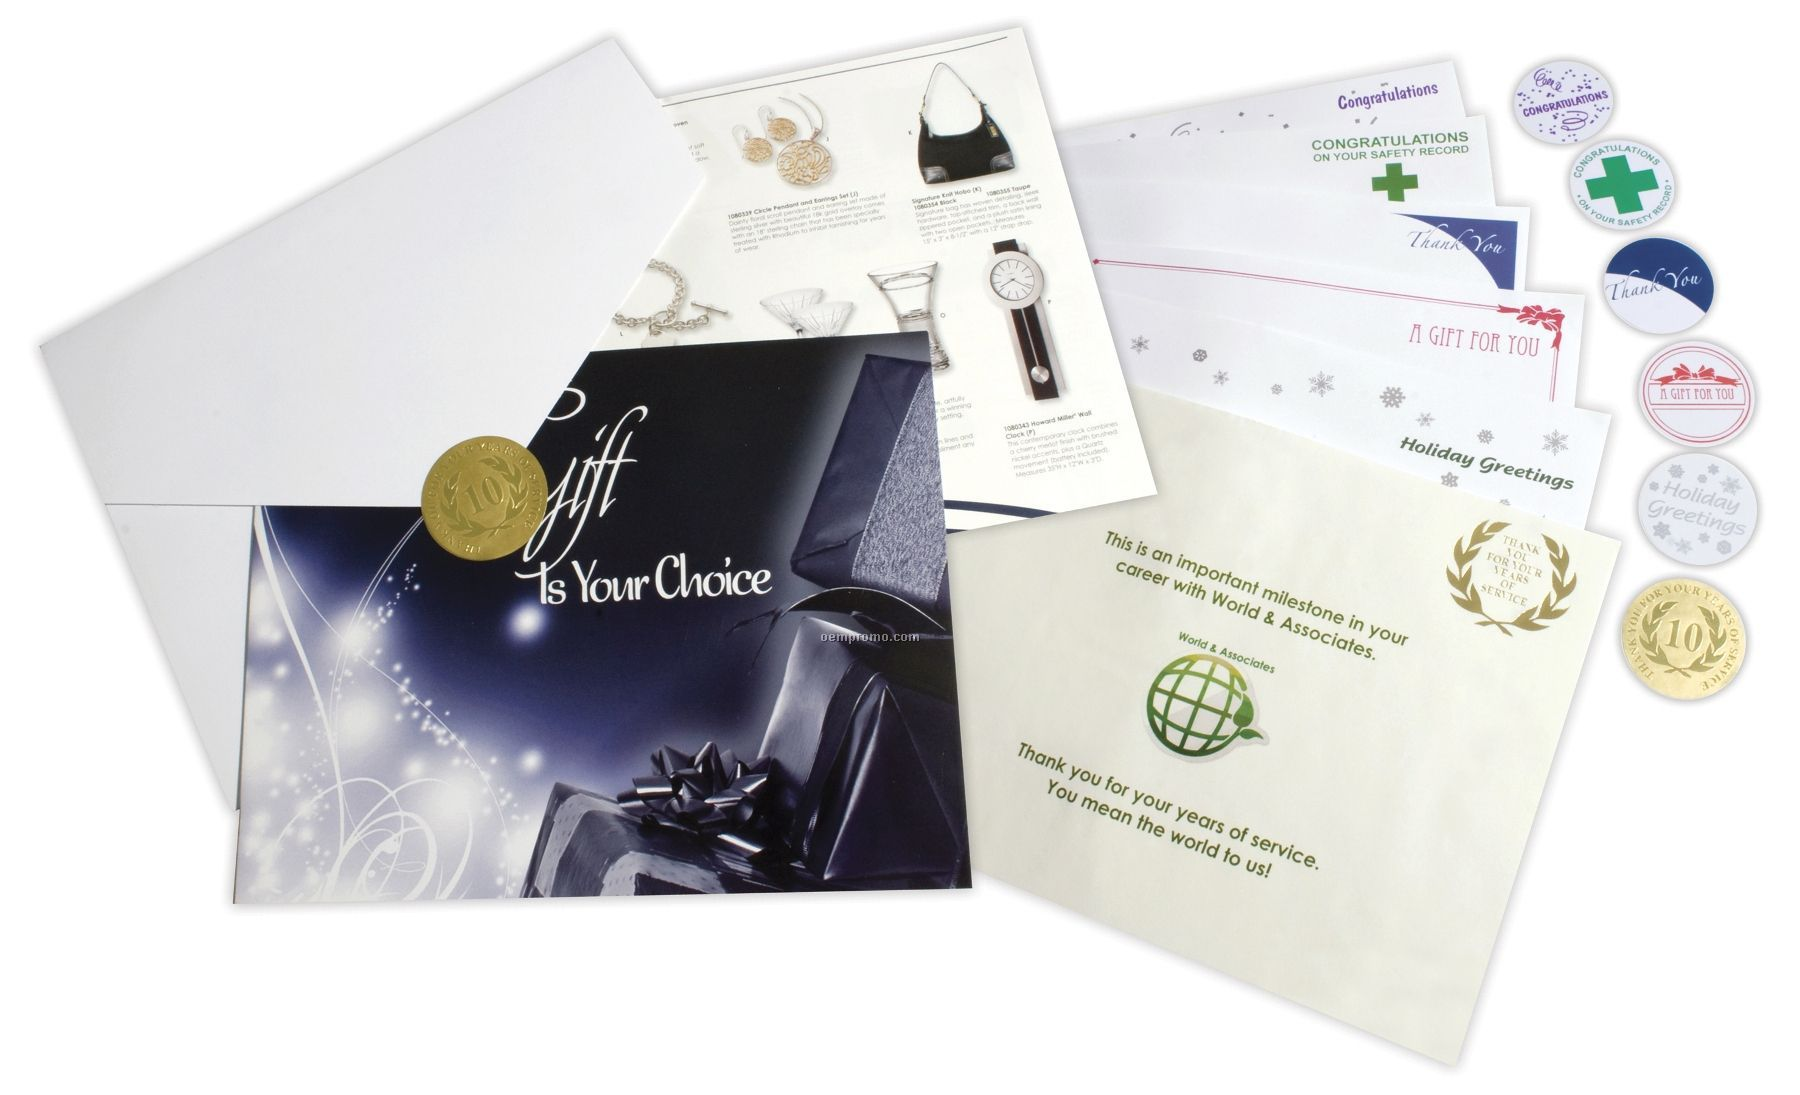 $1000 Gift Of Choice (Platinum Level) Gift Booklet